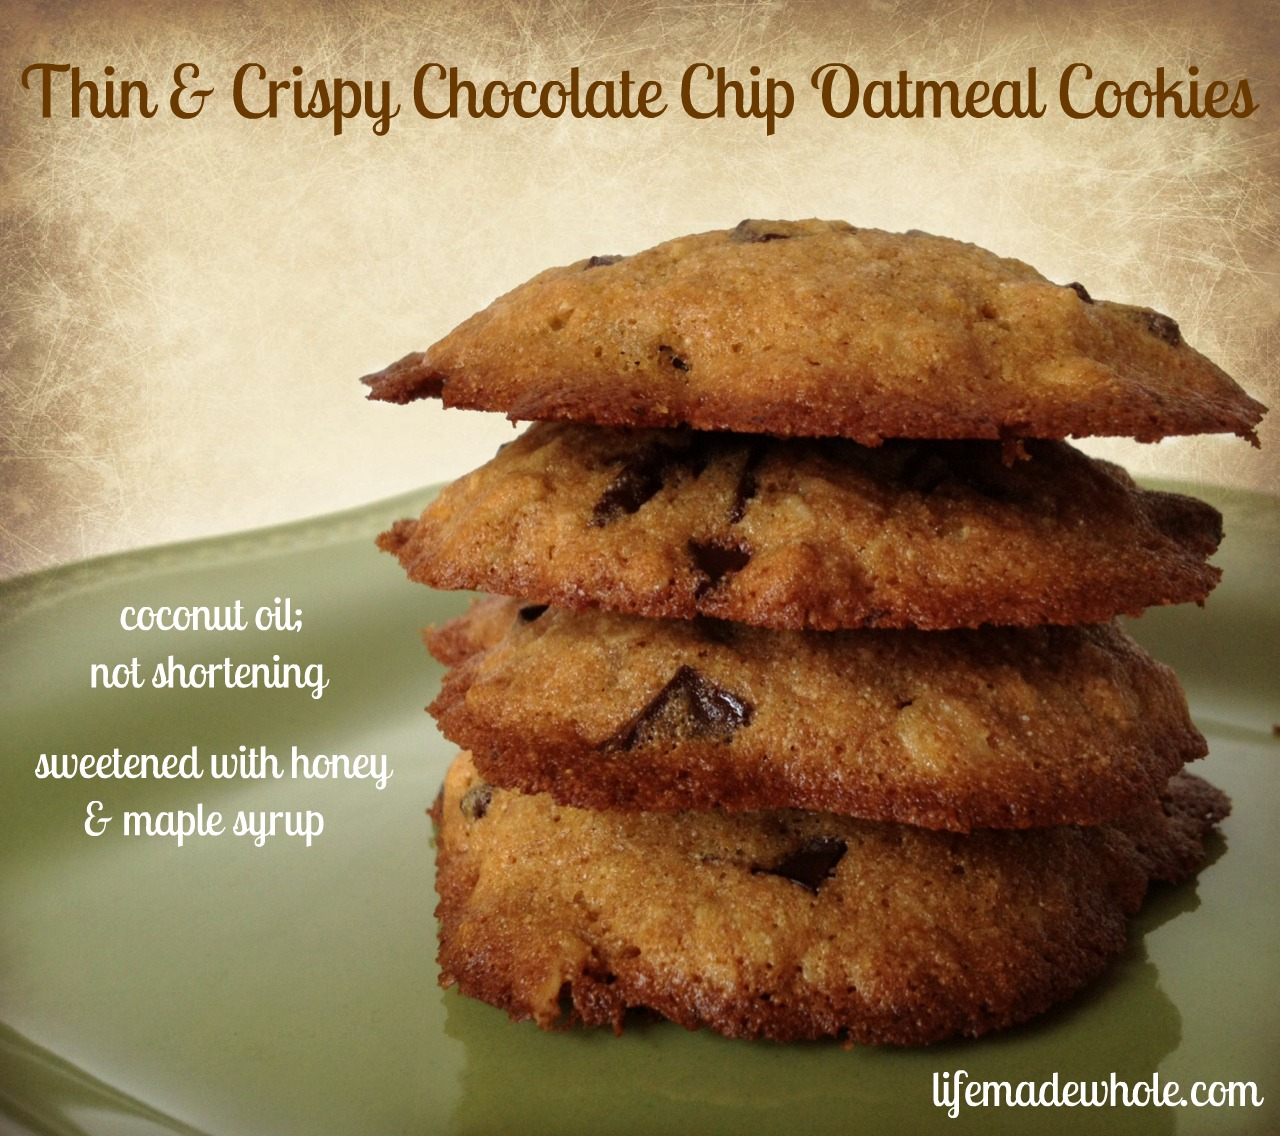 Thin & Crispy Chocolate Chip Oatmeal Cookies | Life Made Whole